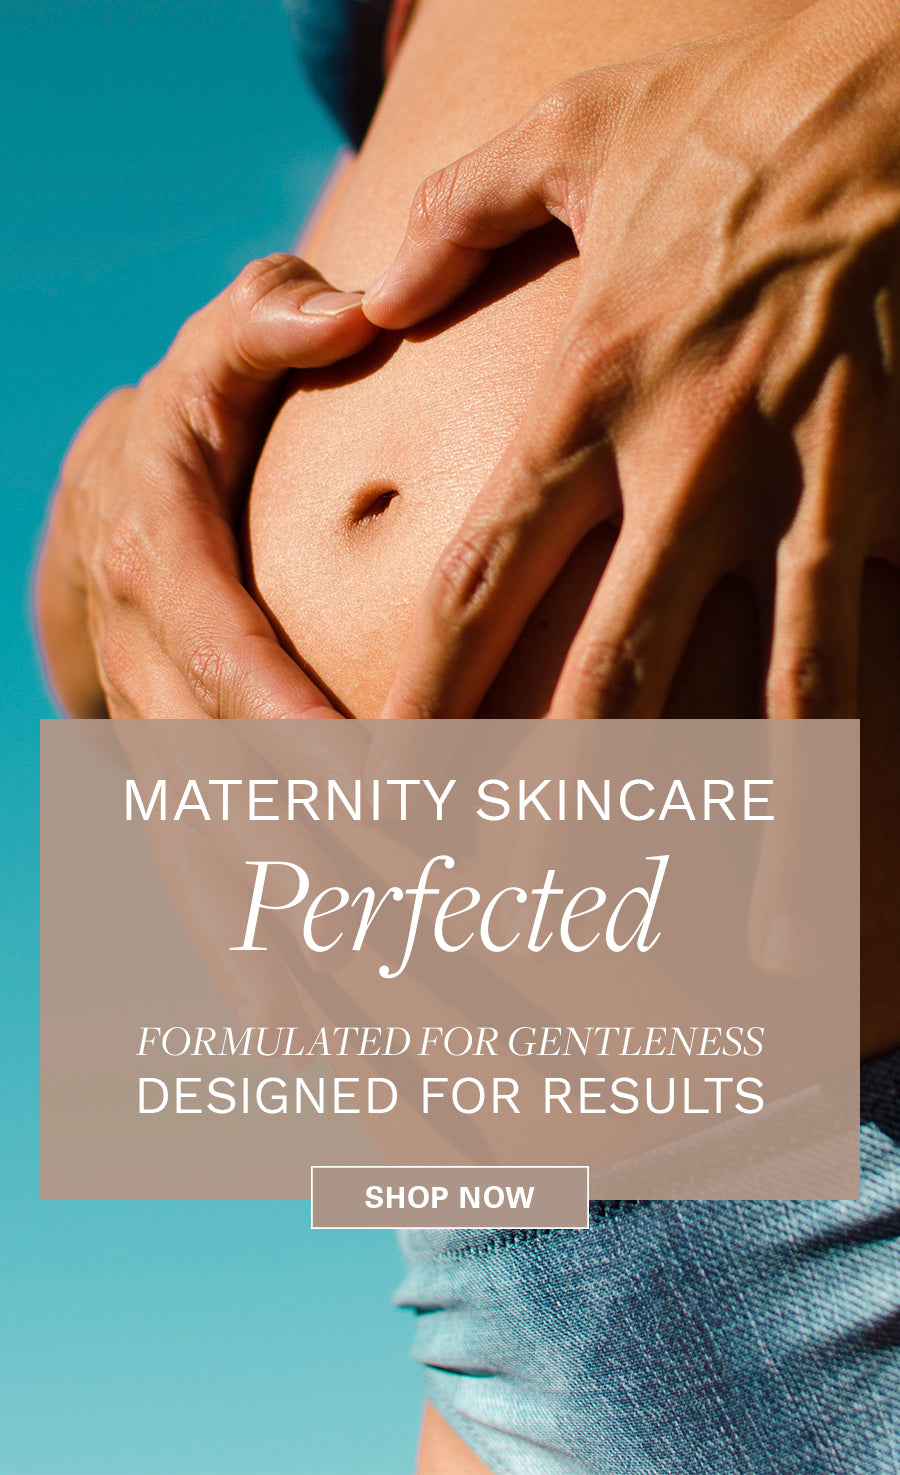 Woman in blue bathing suit holding hands on belly. Maternity Skincare Perfected. Formulated for Gentleness, Designed for Results. Shop Now